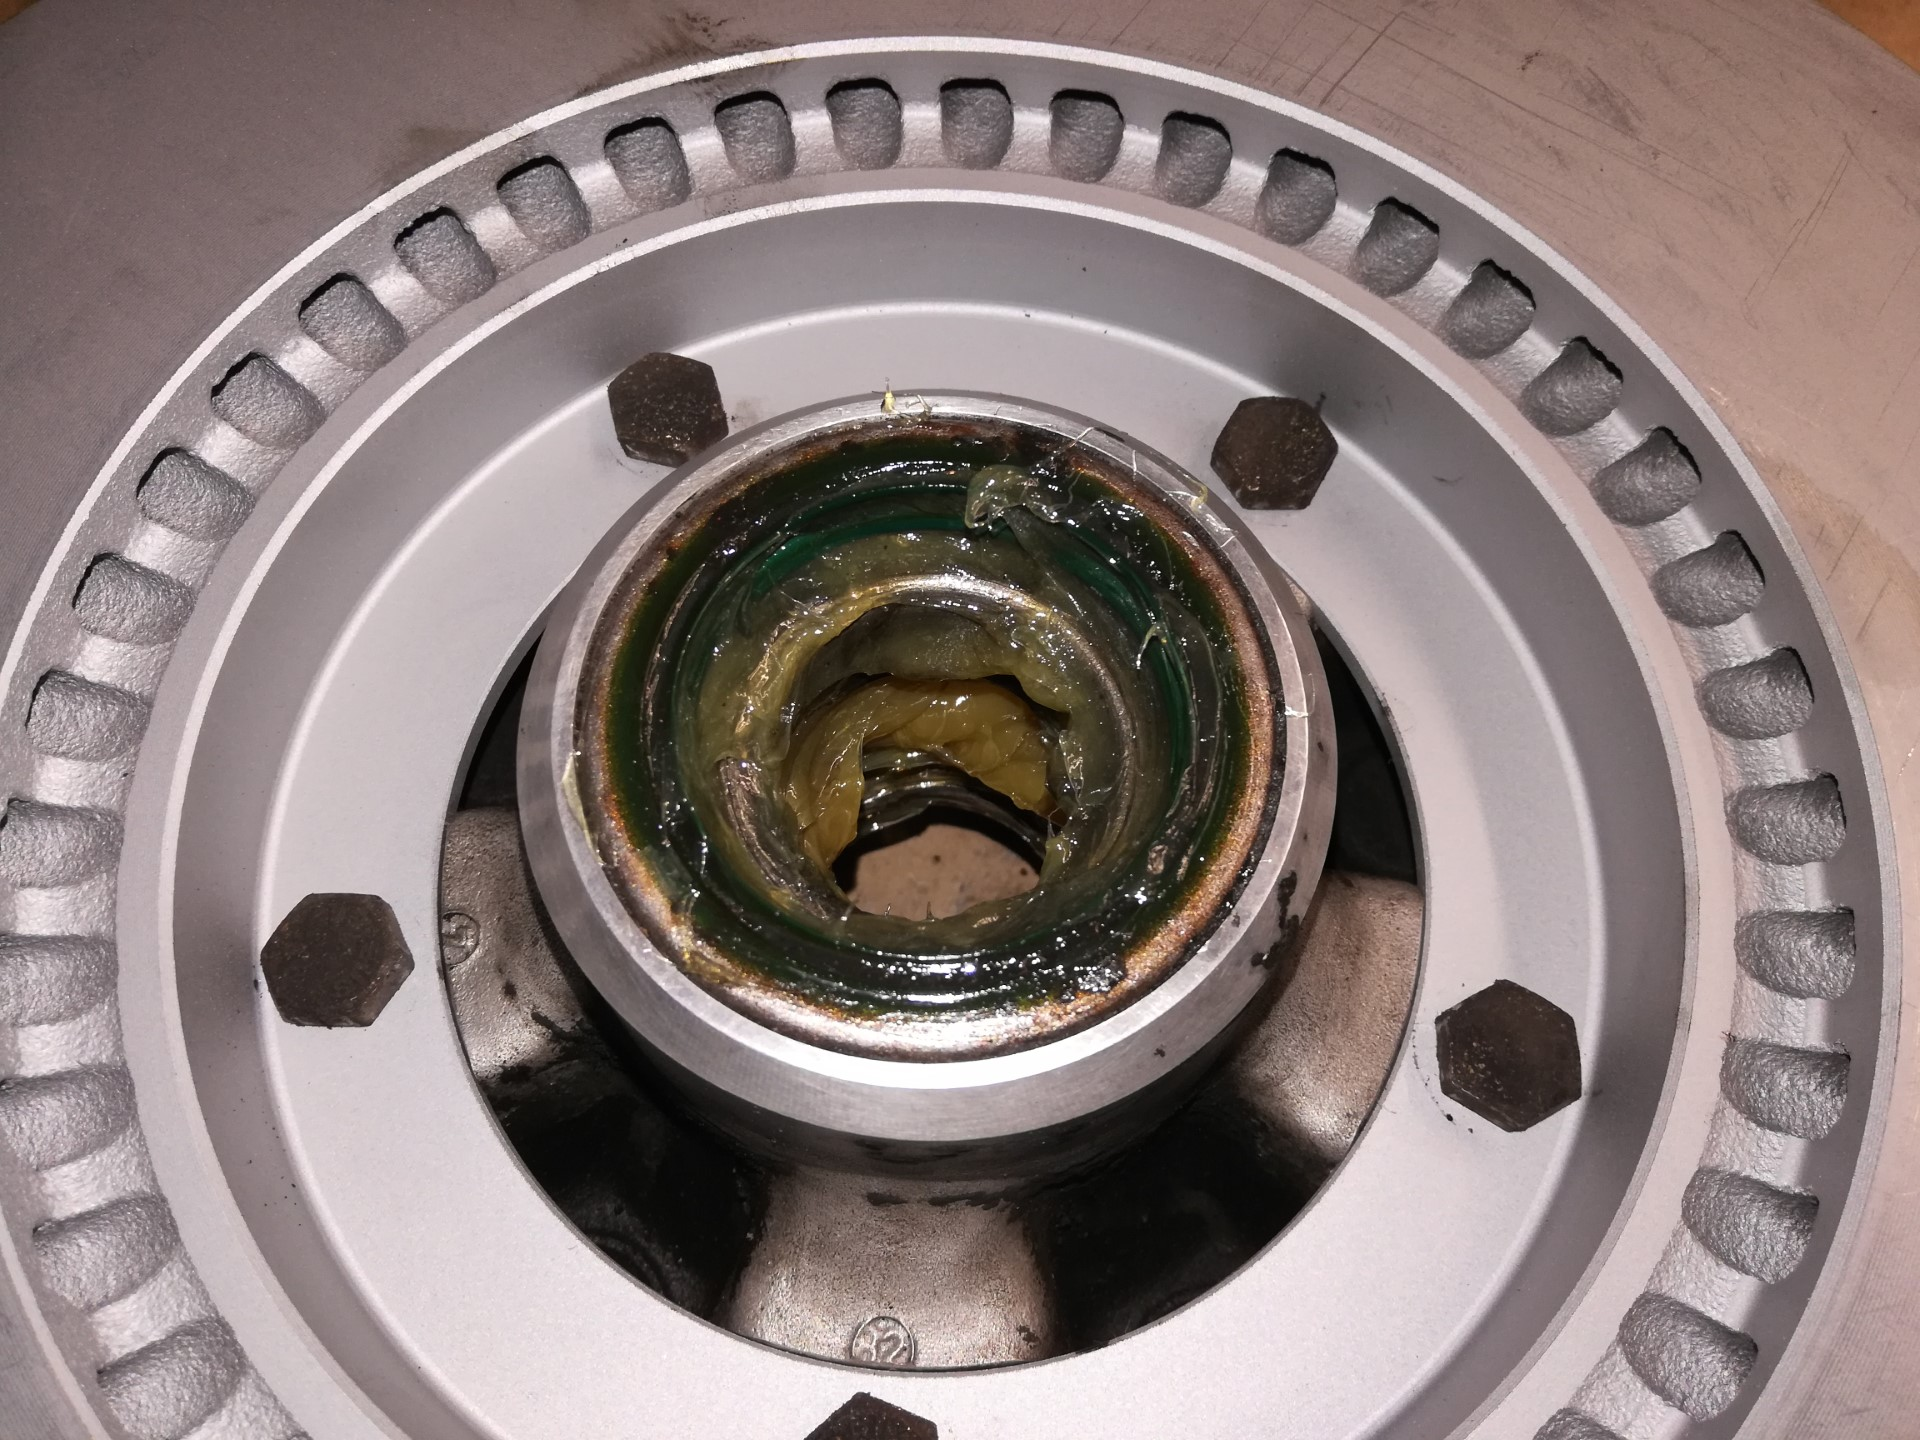 Air-cooled Porsche 911 front wheel hub assembly